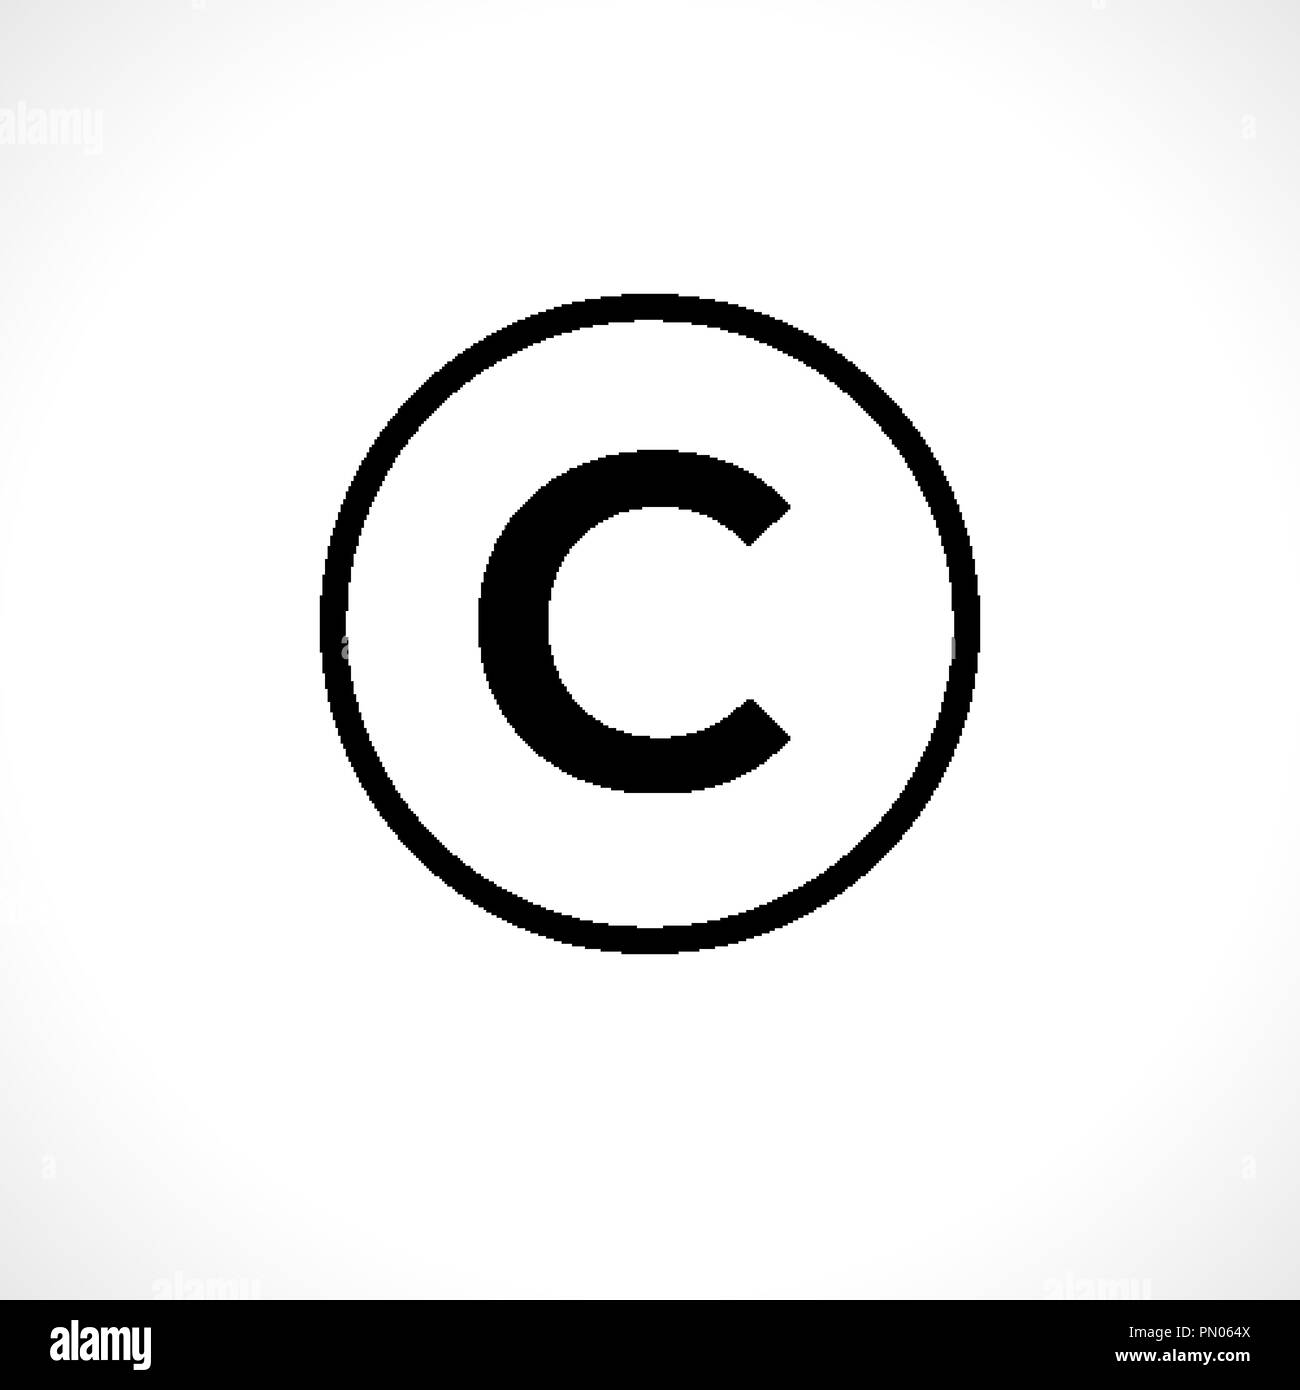 Circular copyright icon isolated on background Stock Vector